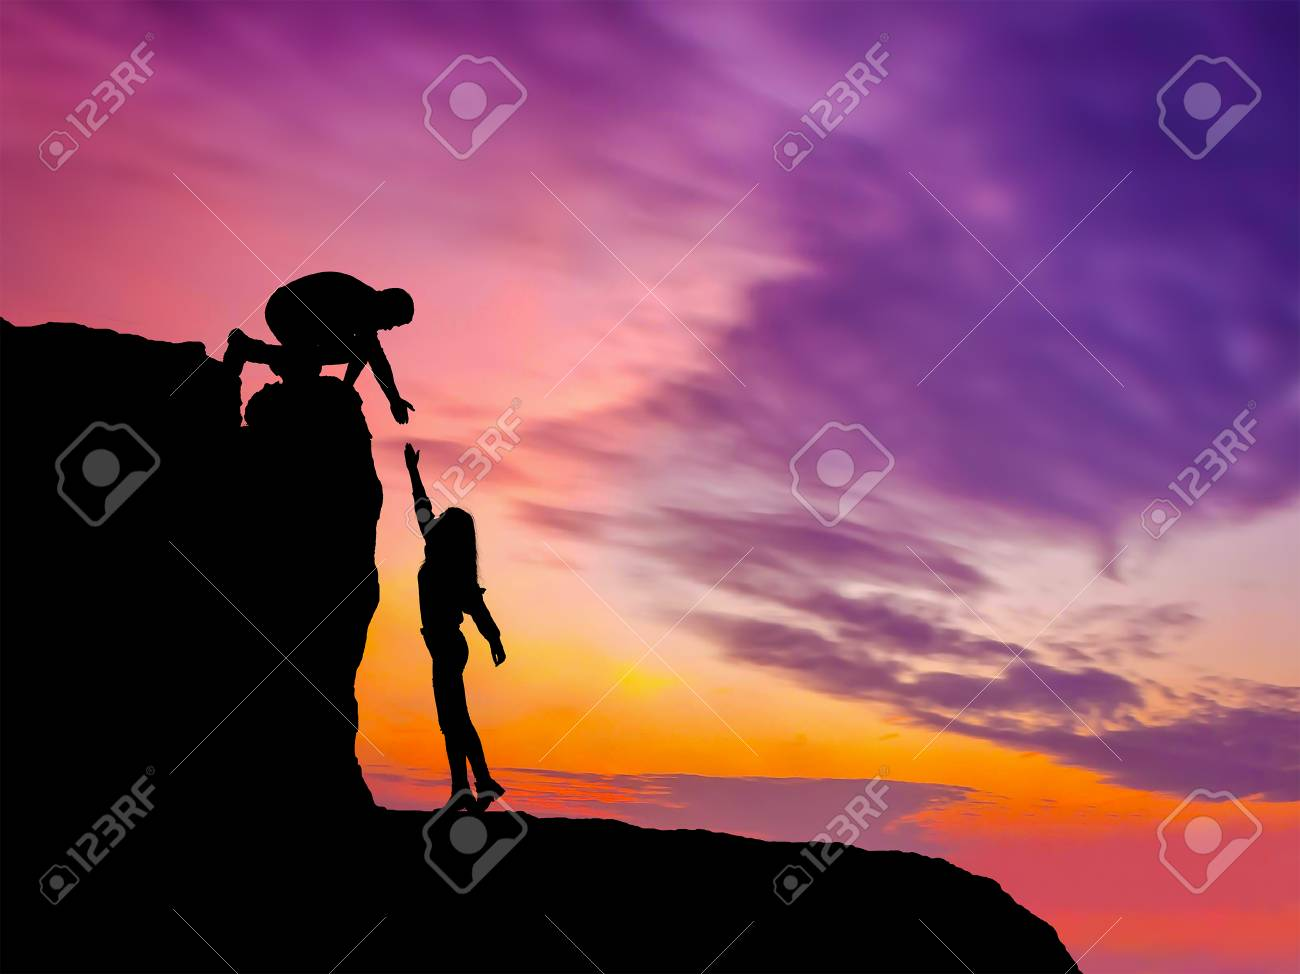 Silhouettes of two people climbing on mountain and helping. - 121212753